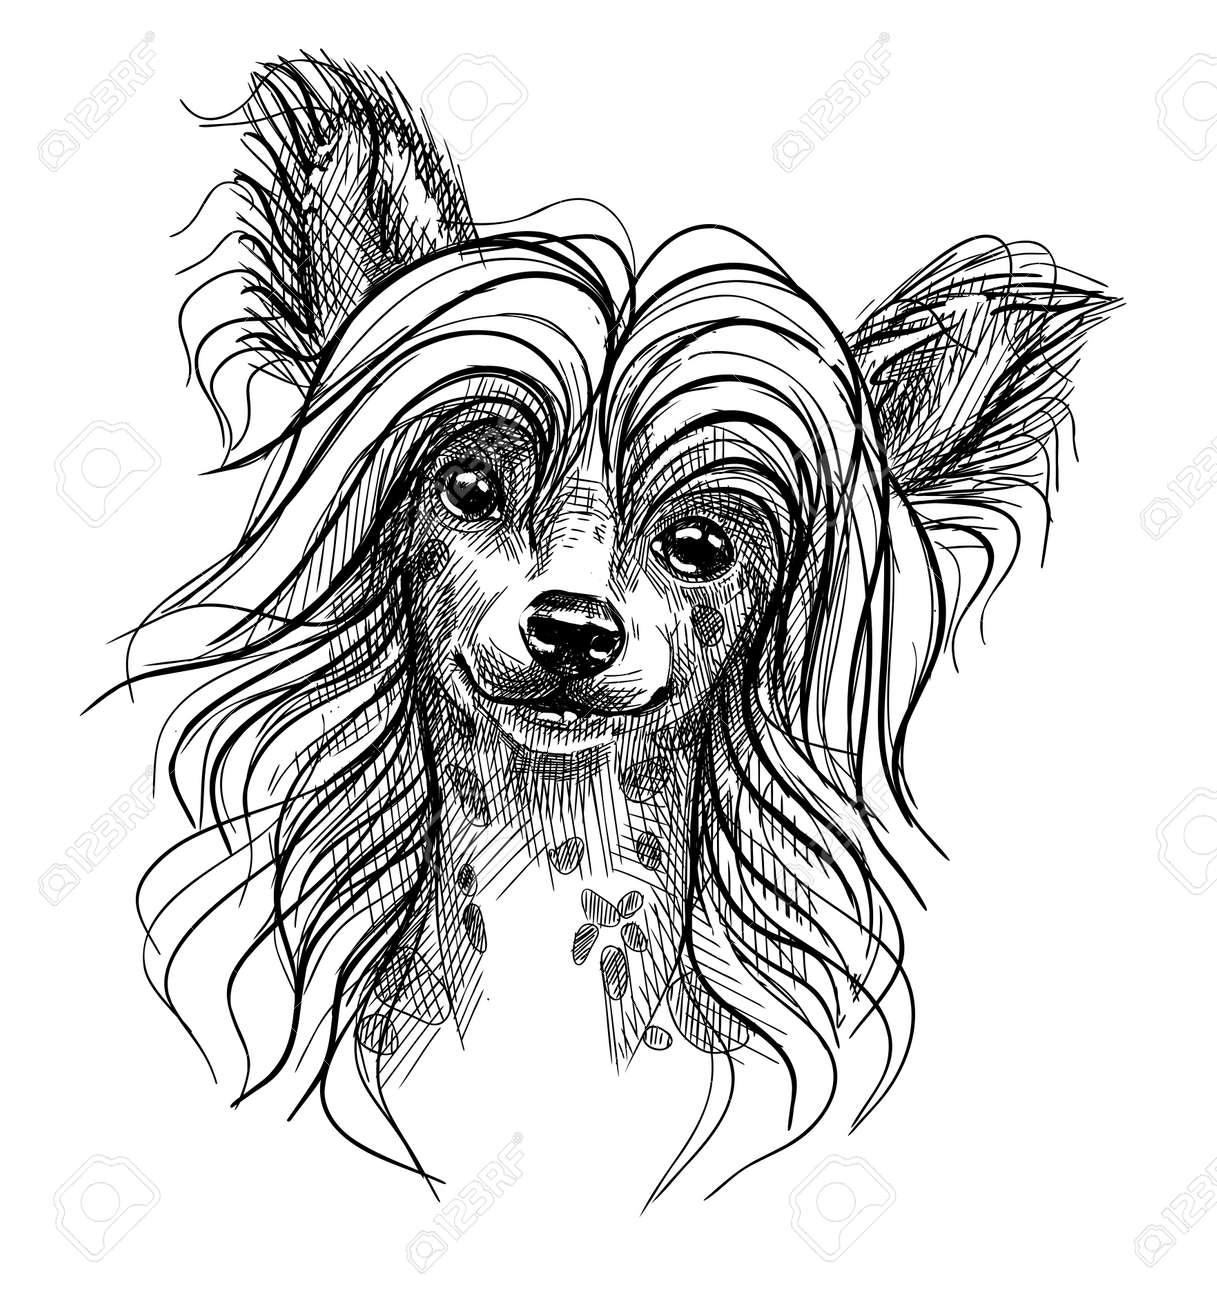 Portrait of a small dog, a Chinese crested puppy. Hand-drawn sketch with black and white pen, realistic vector illustration. Isolated background. - 158432592